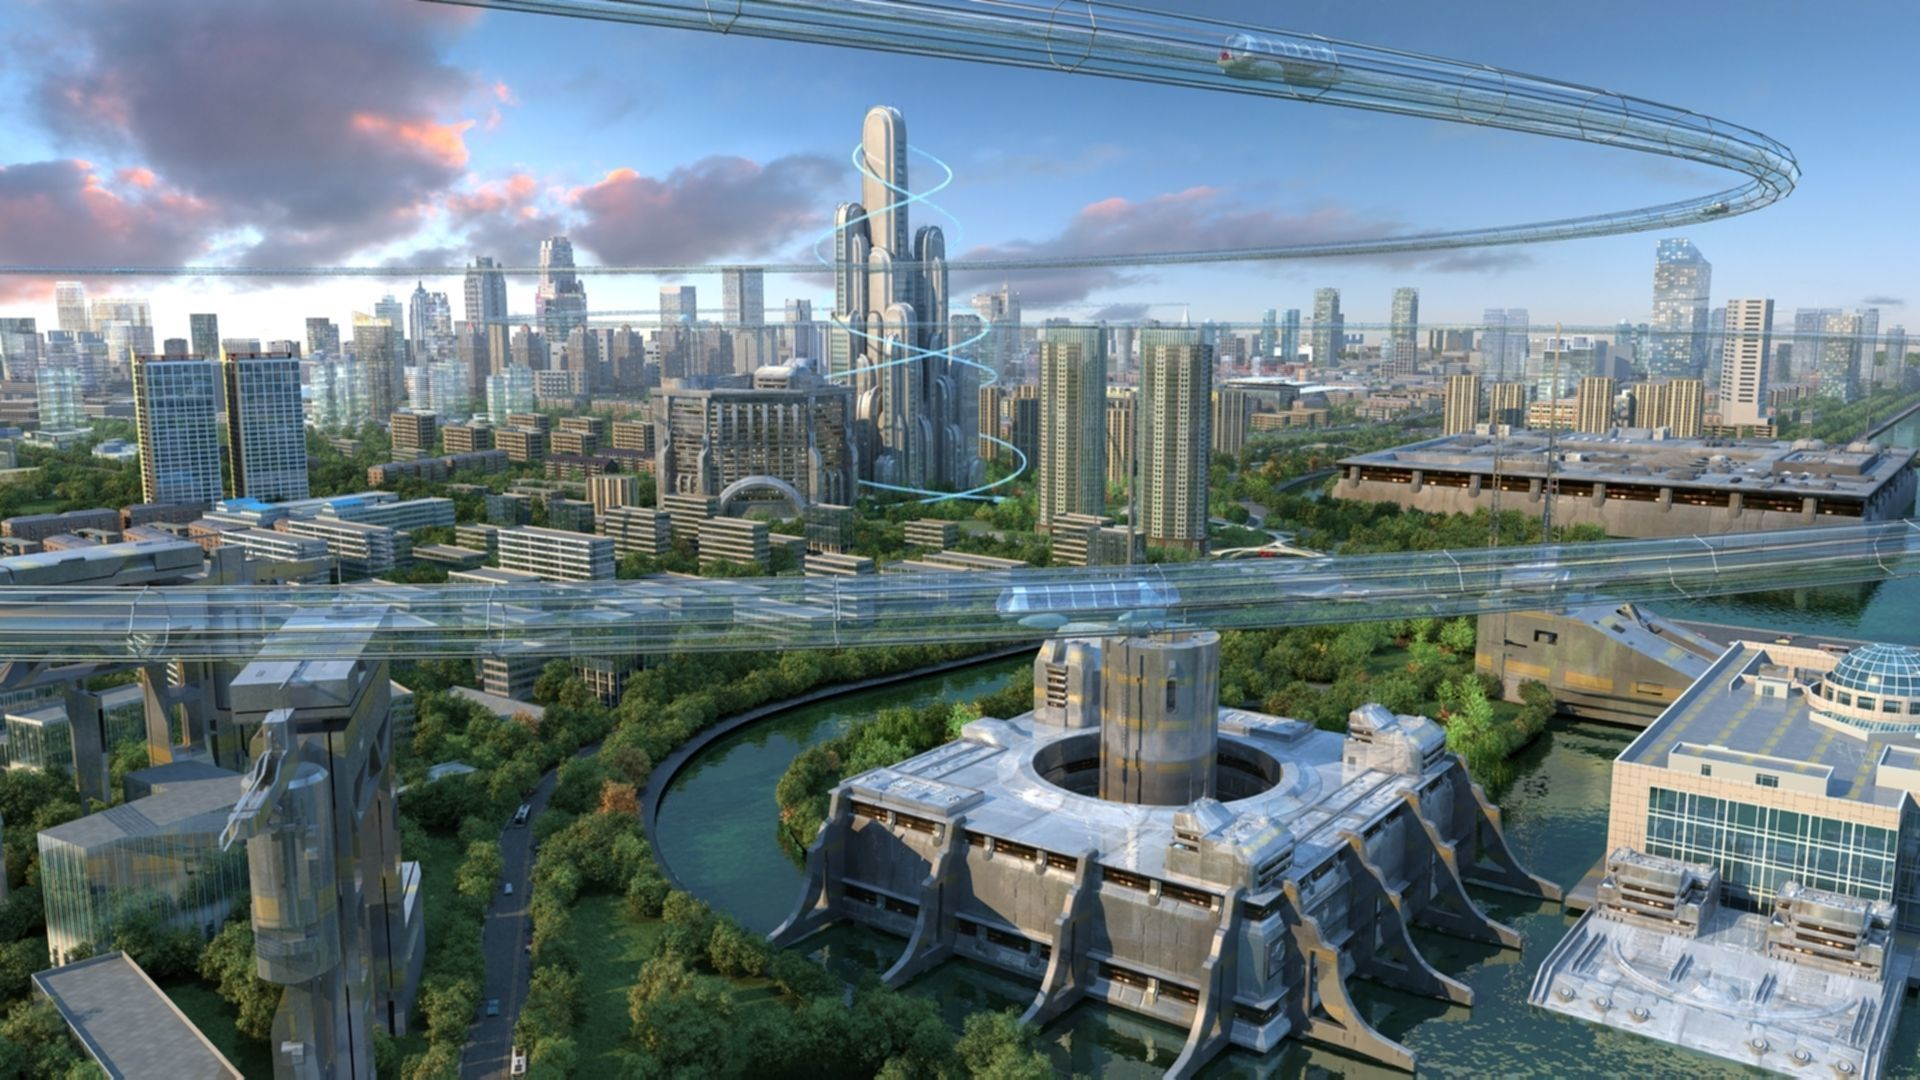 3d Animated Future City 01 Cgtrader